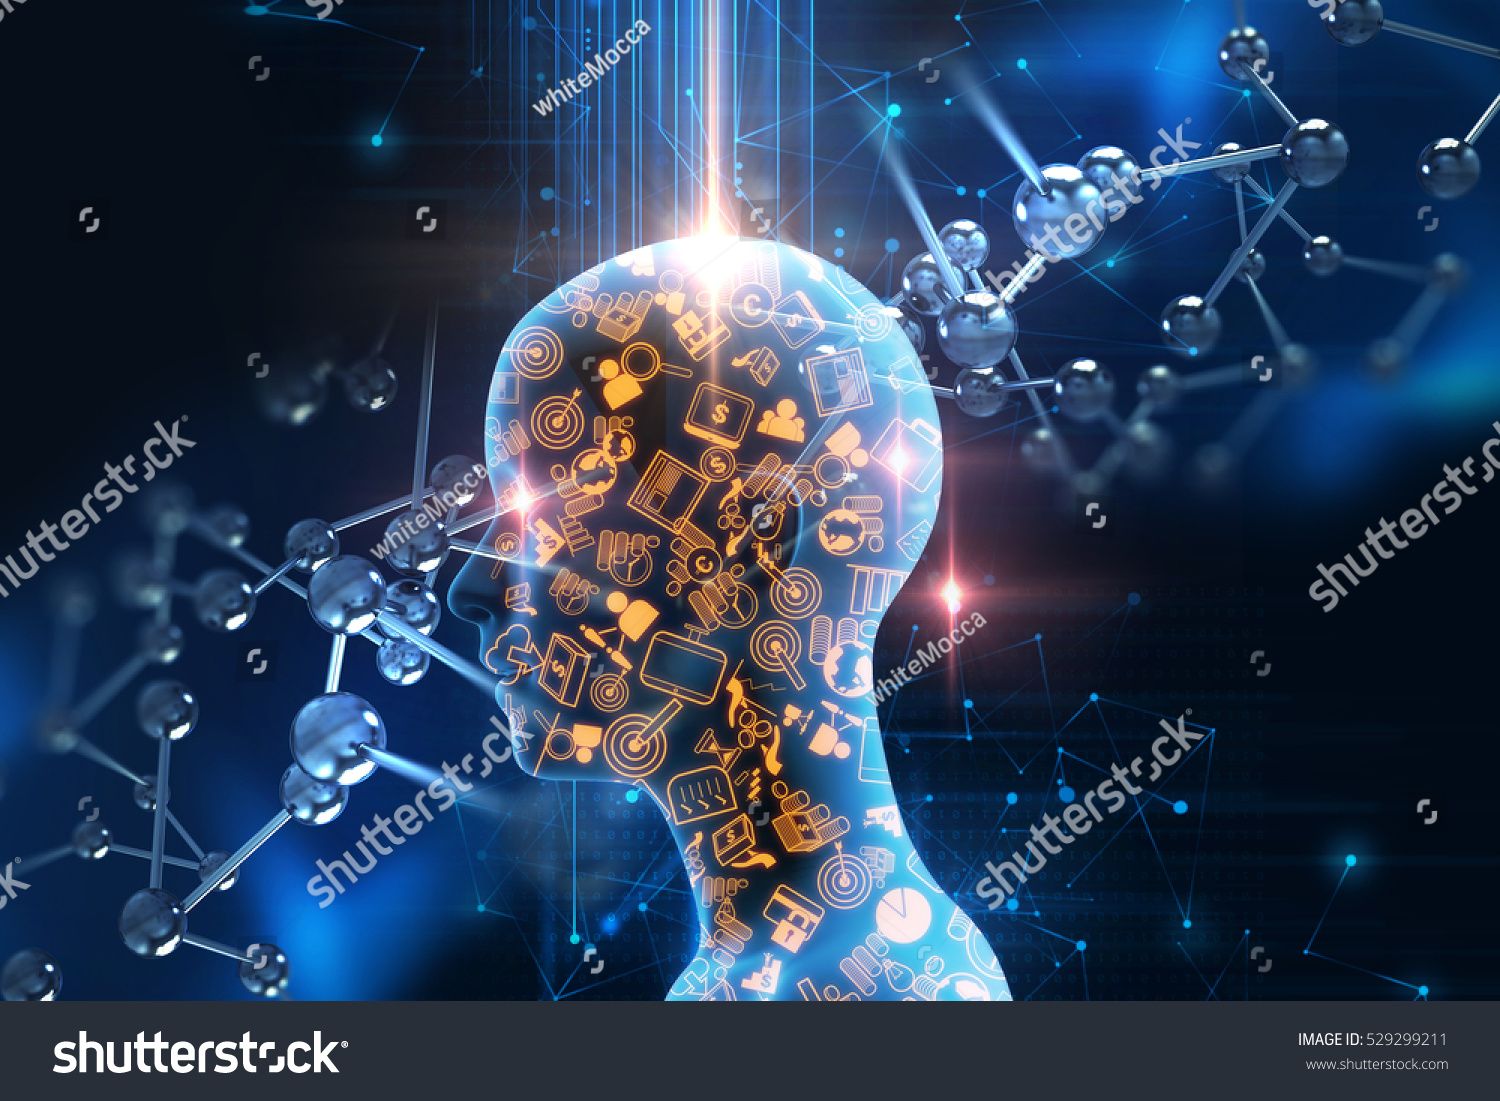 virtual human 3dillustration on business and learning technology  background represent learning process.